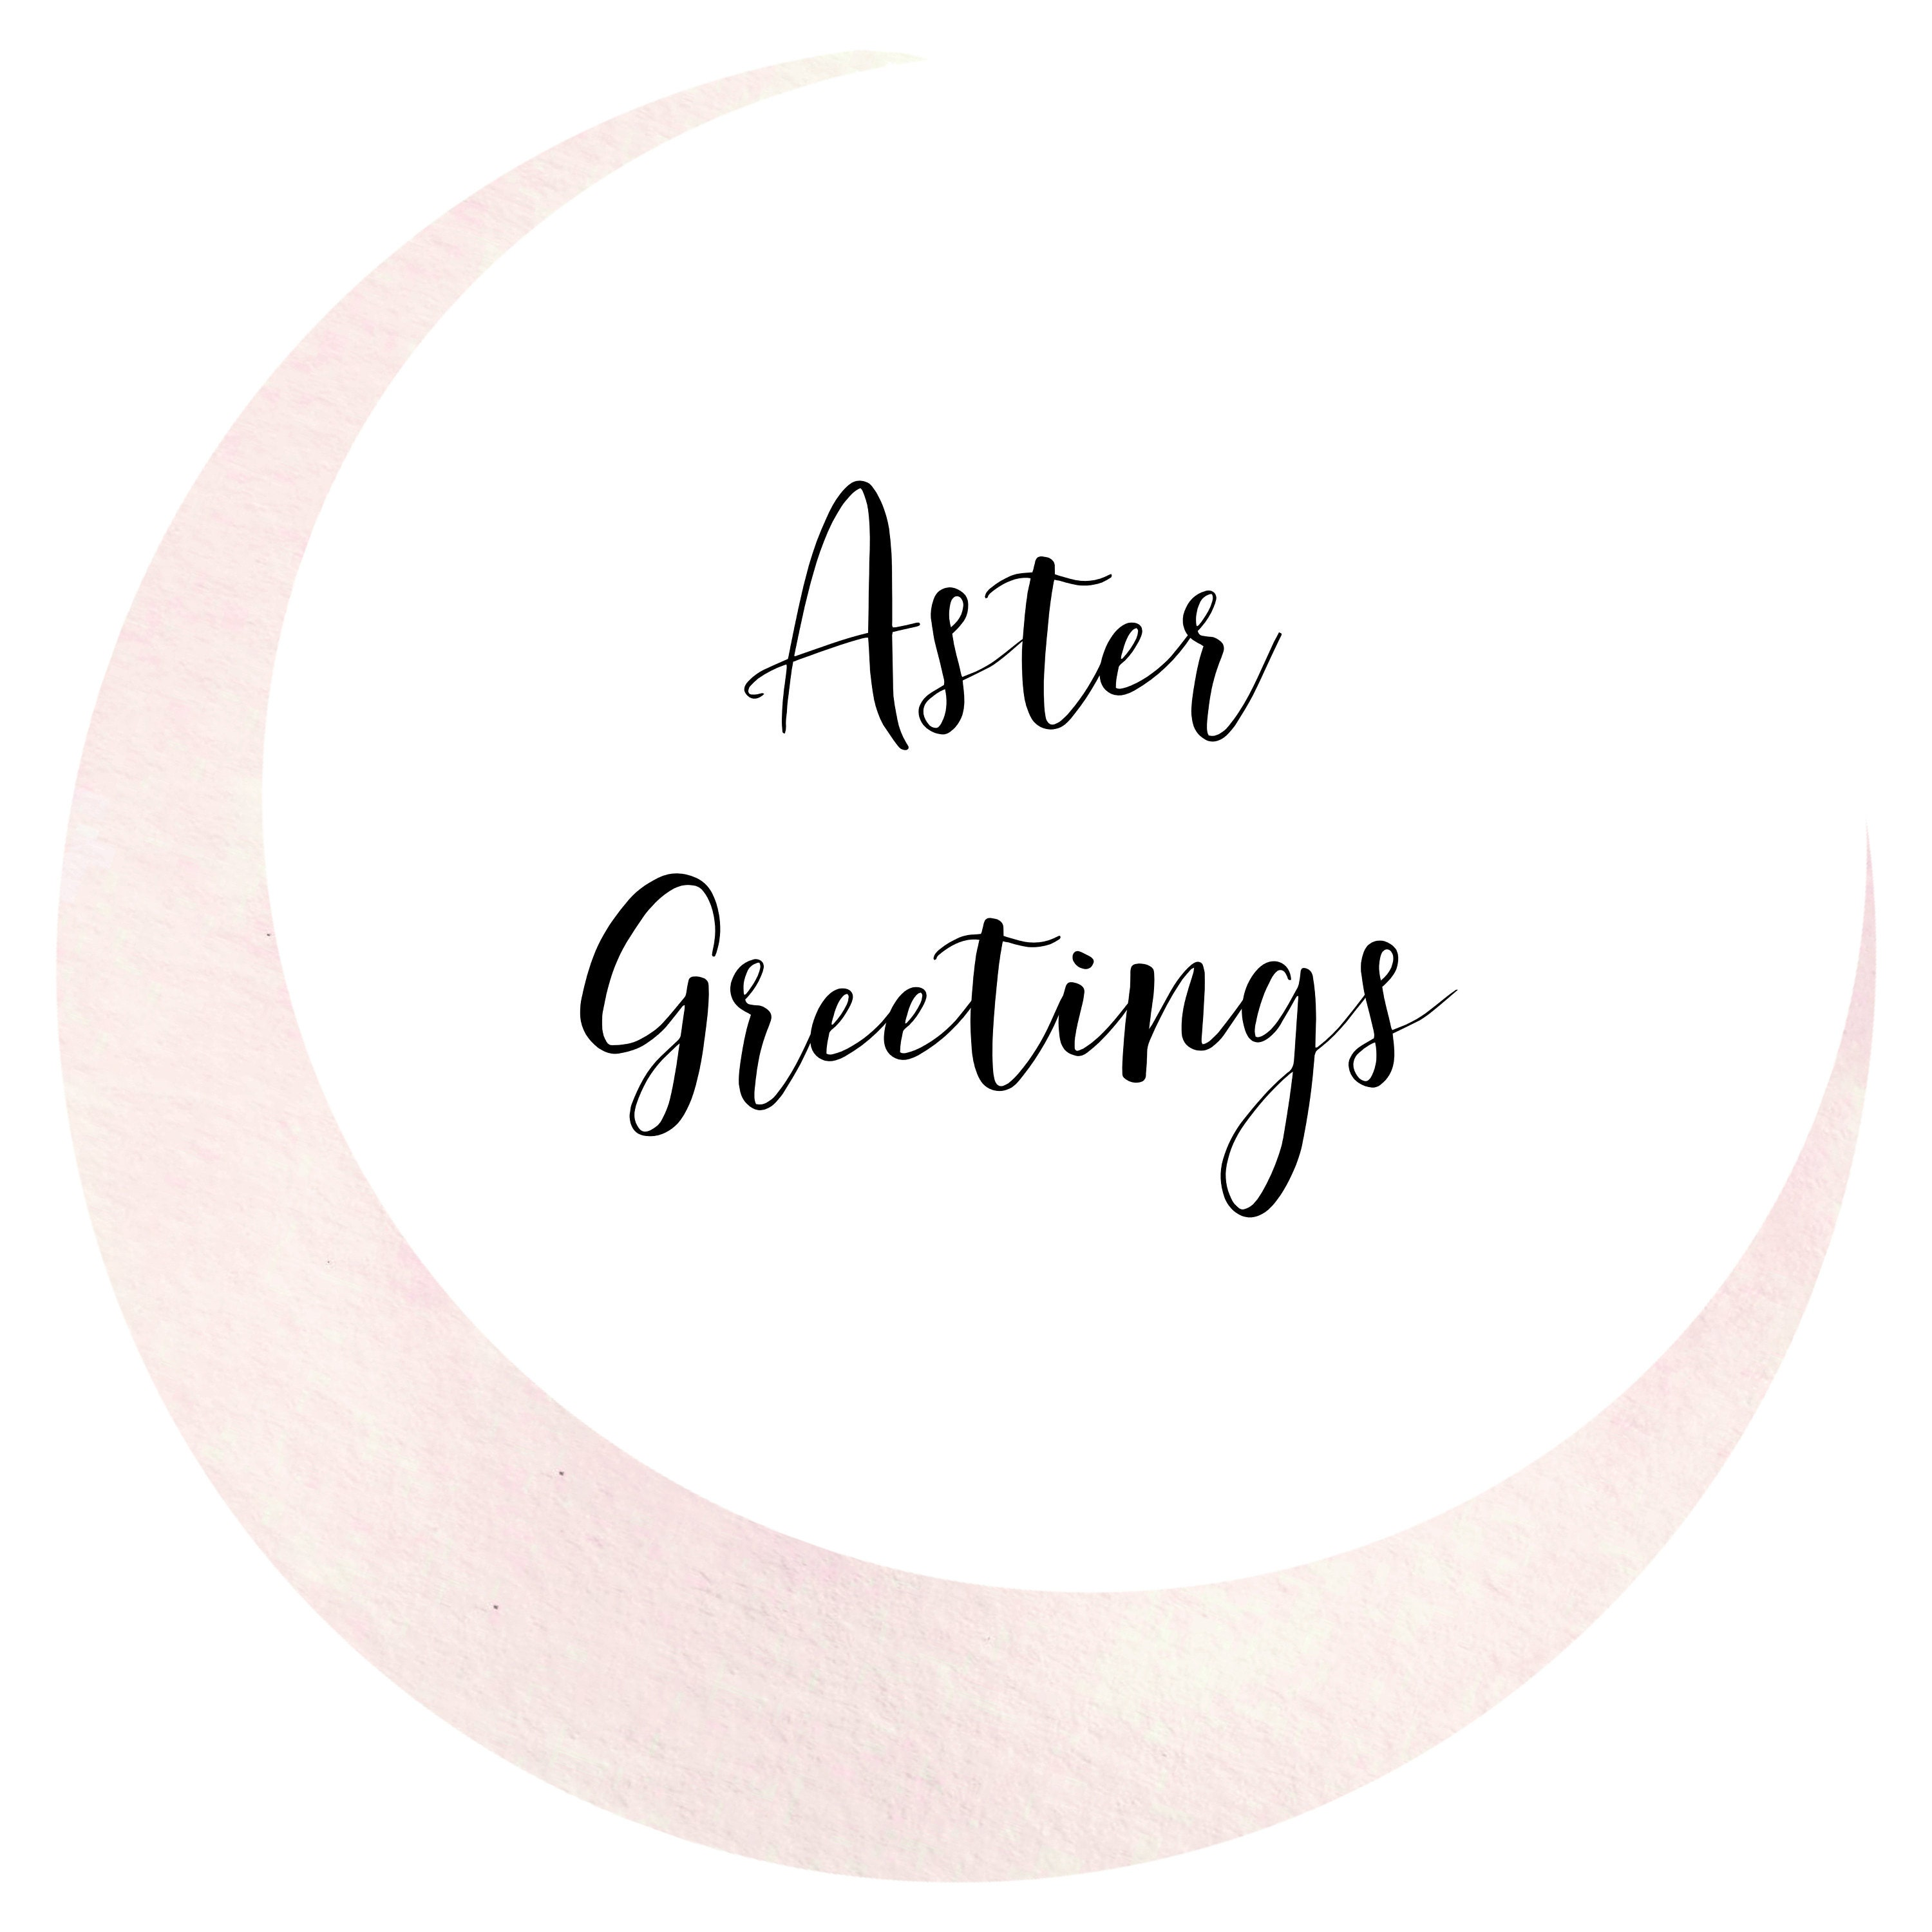 Aster Greetings Watercolor Greeting Cards by AsterGreetings